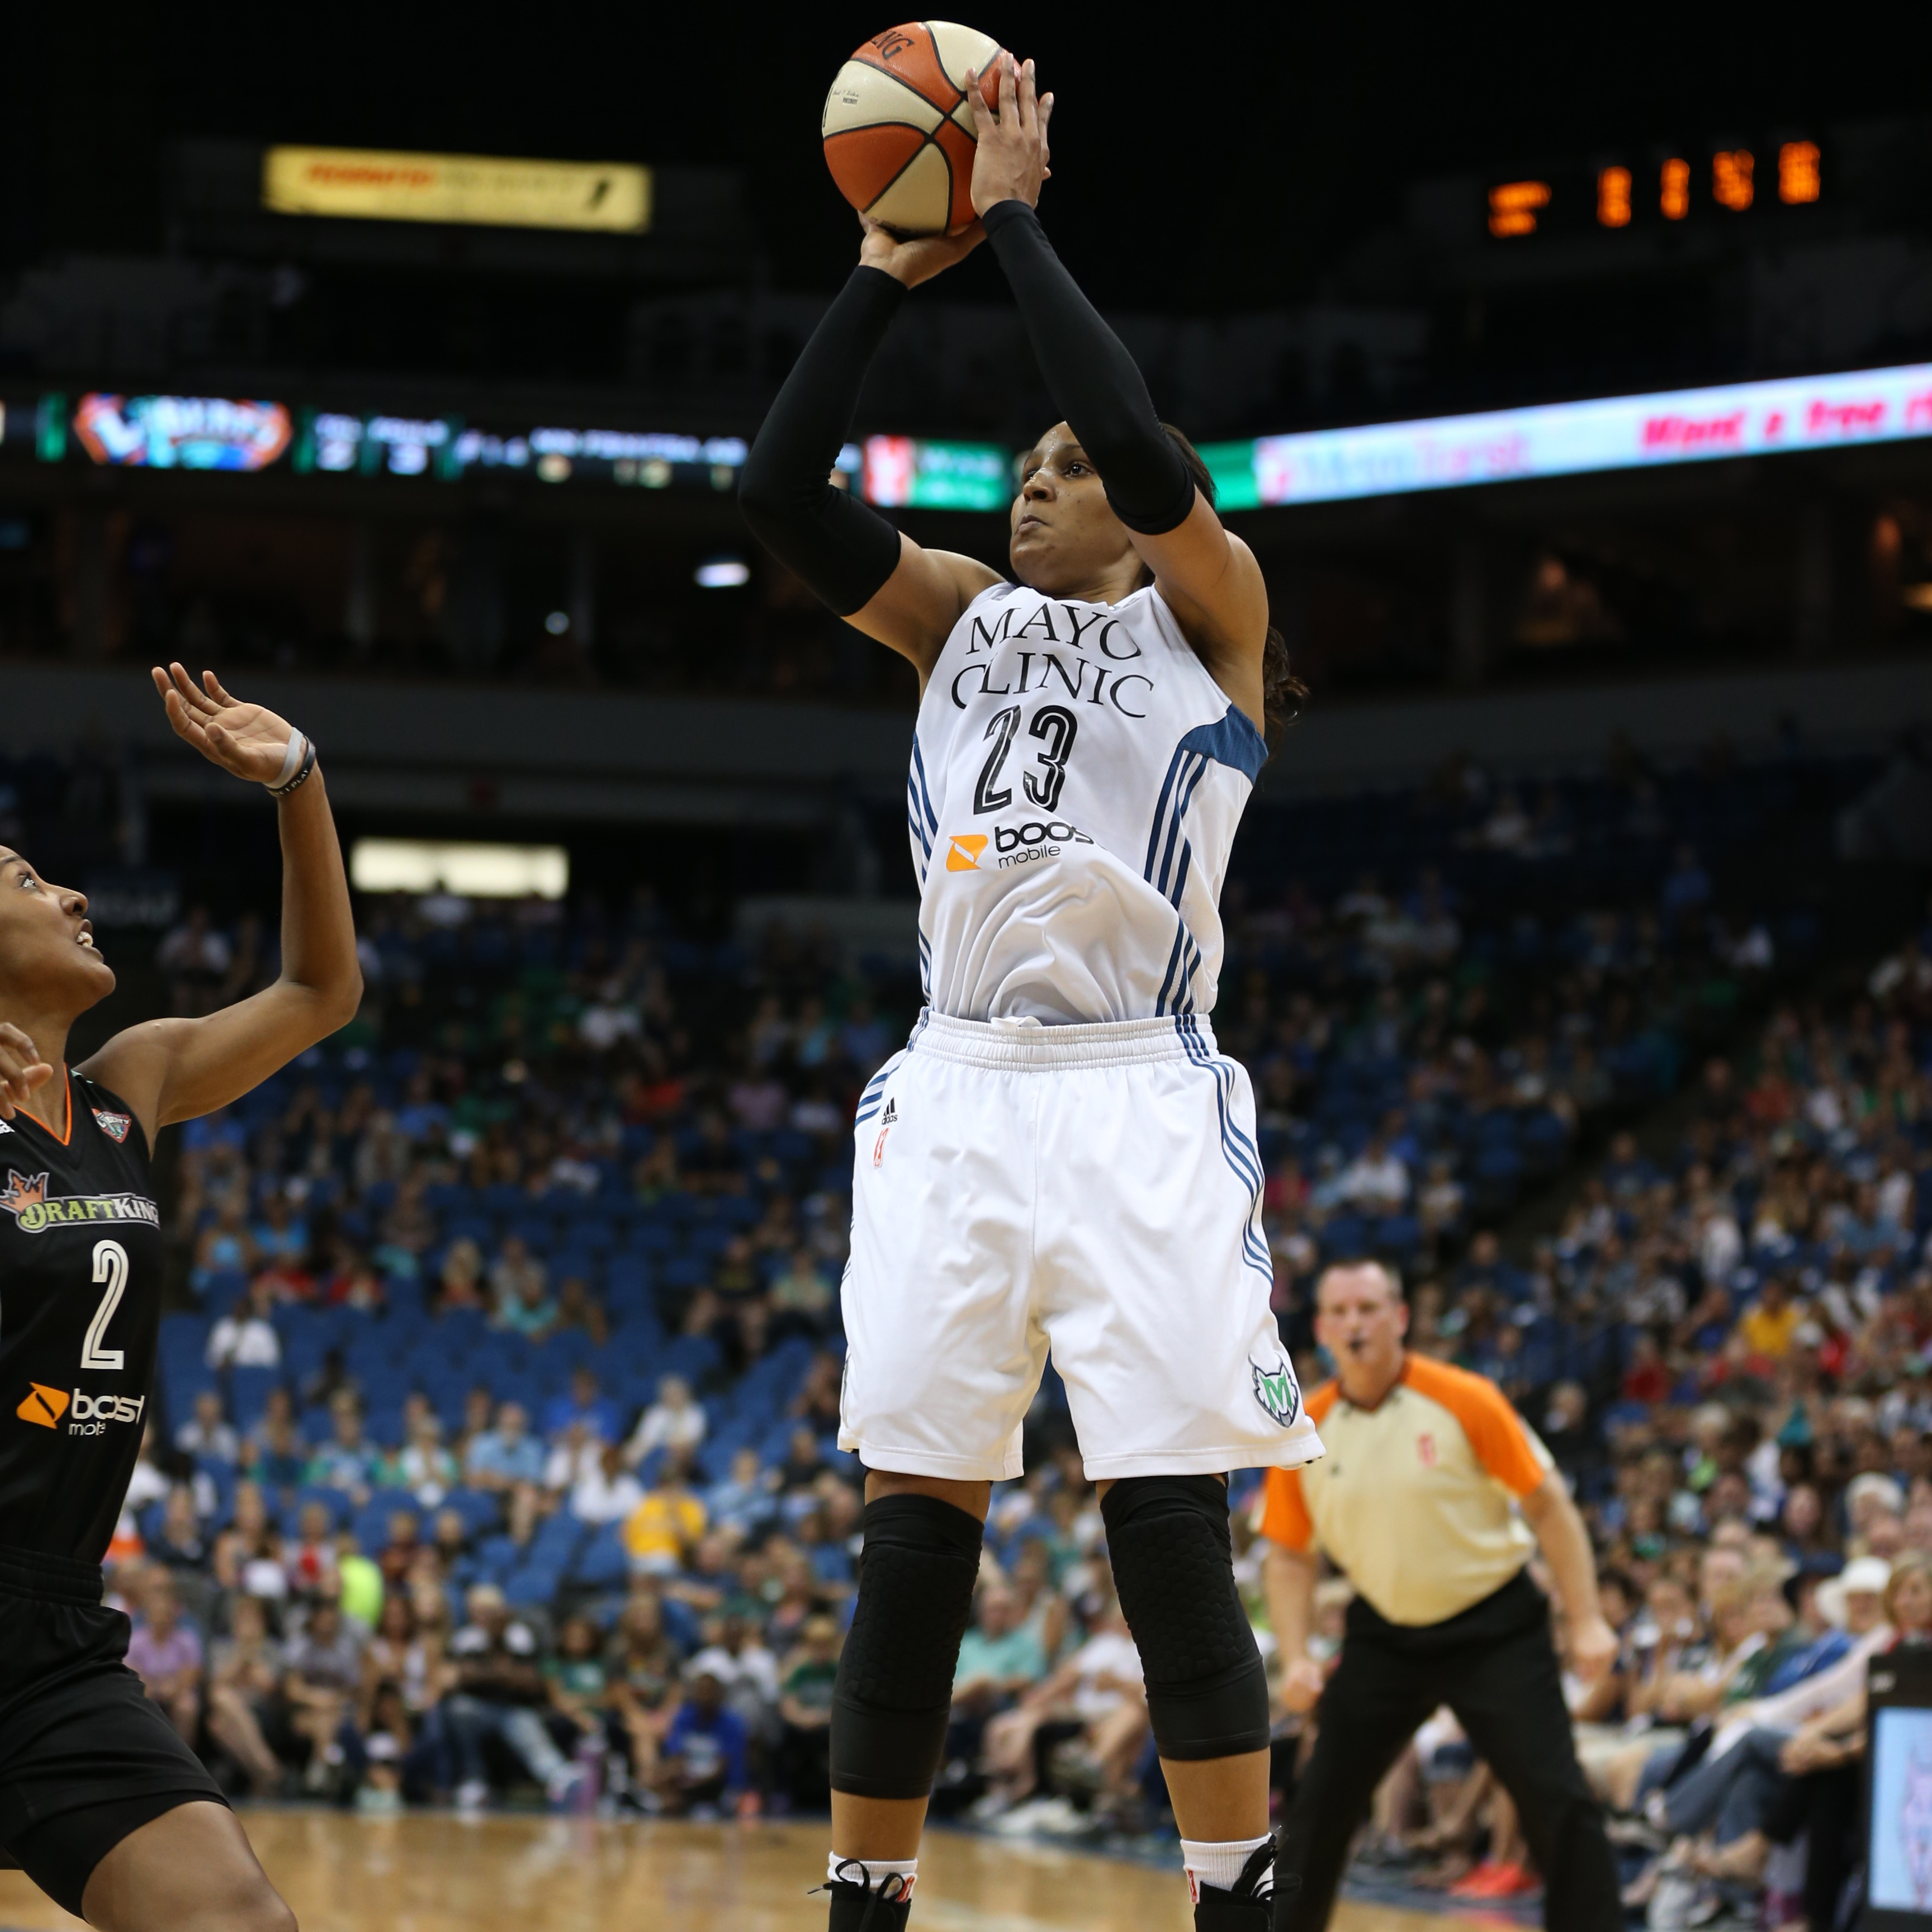 After taking an incidental elbow to the face in last Friday night's game, Maya Moore, black-eye and all, came out to lead Minnesota, scoring 23 points, grabbing five rebounds, dishing out two assists and snatching two steals in the Lynx loss.